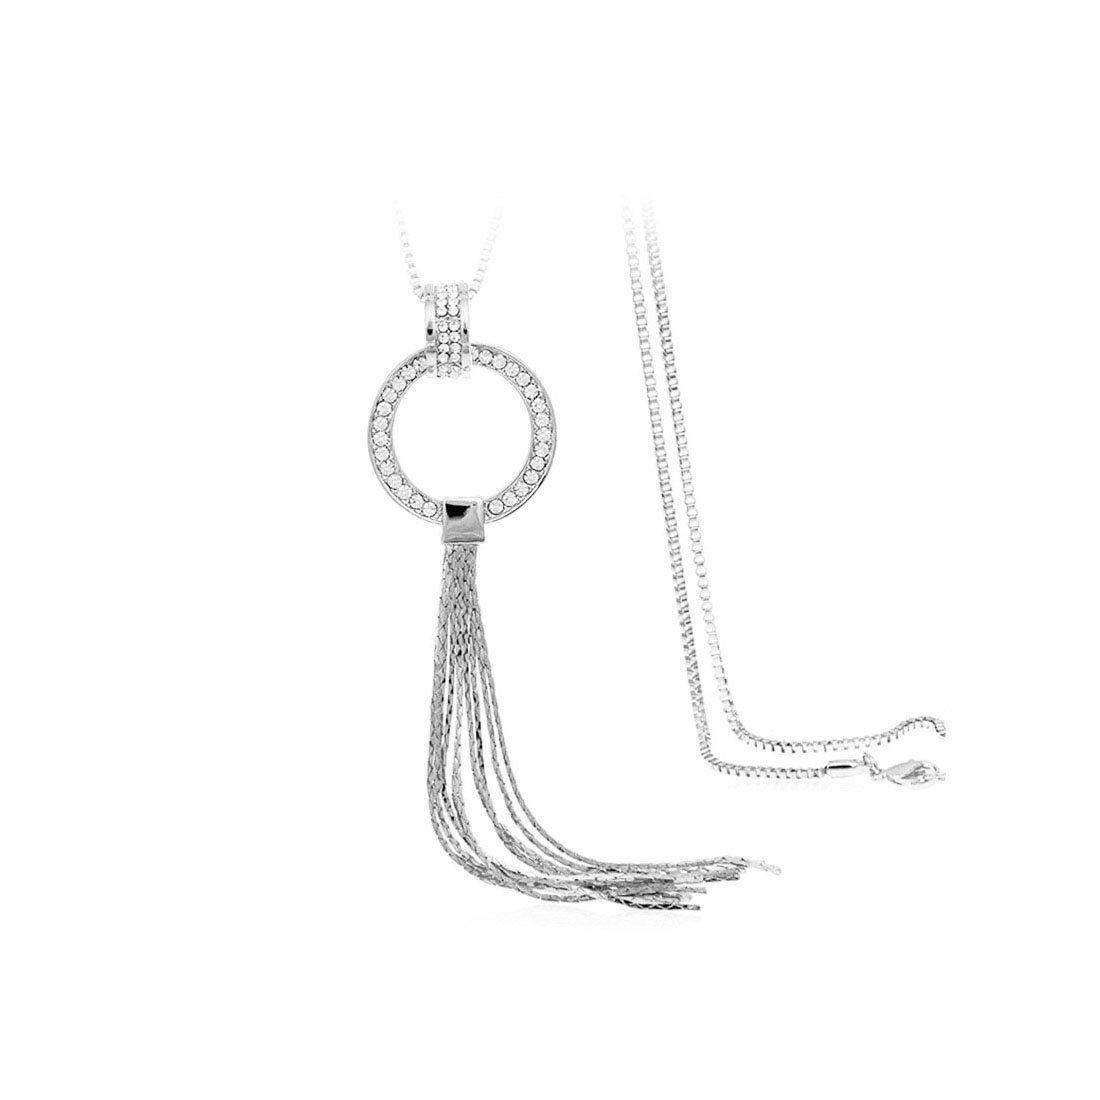 KUIYAI Long Chain Tassel Y Necklace Rhinestone O Ring Necklace for Women (Silver)